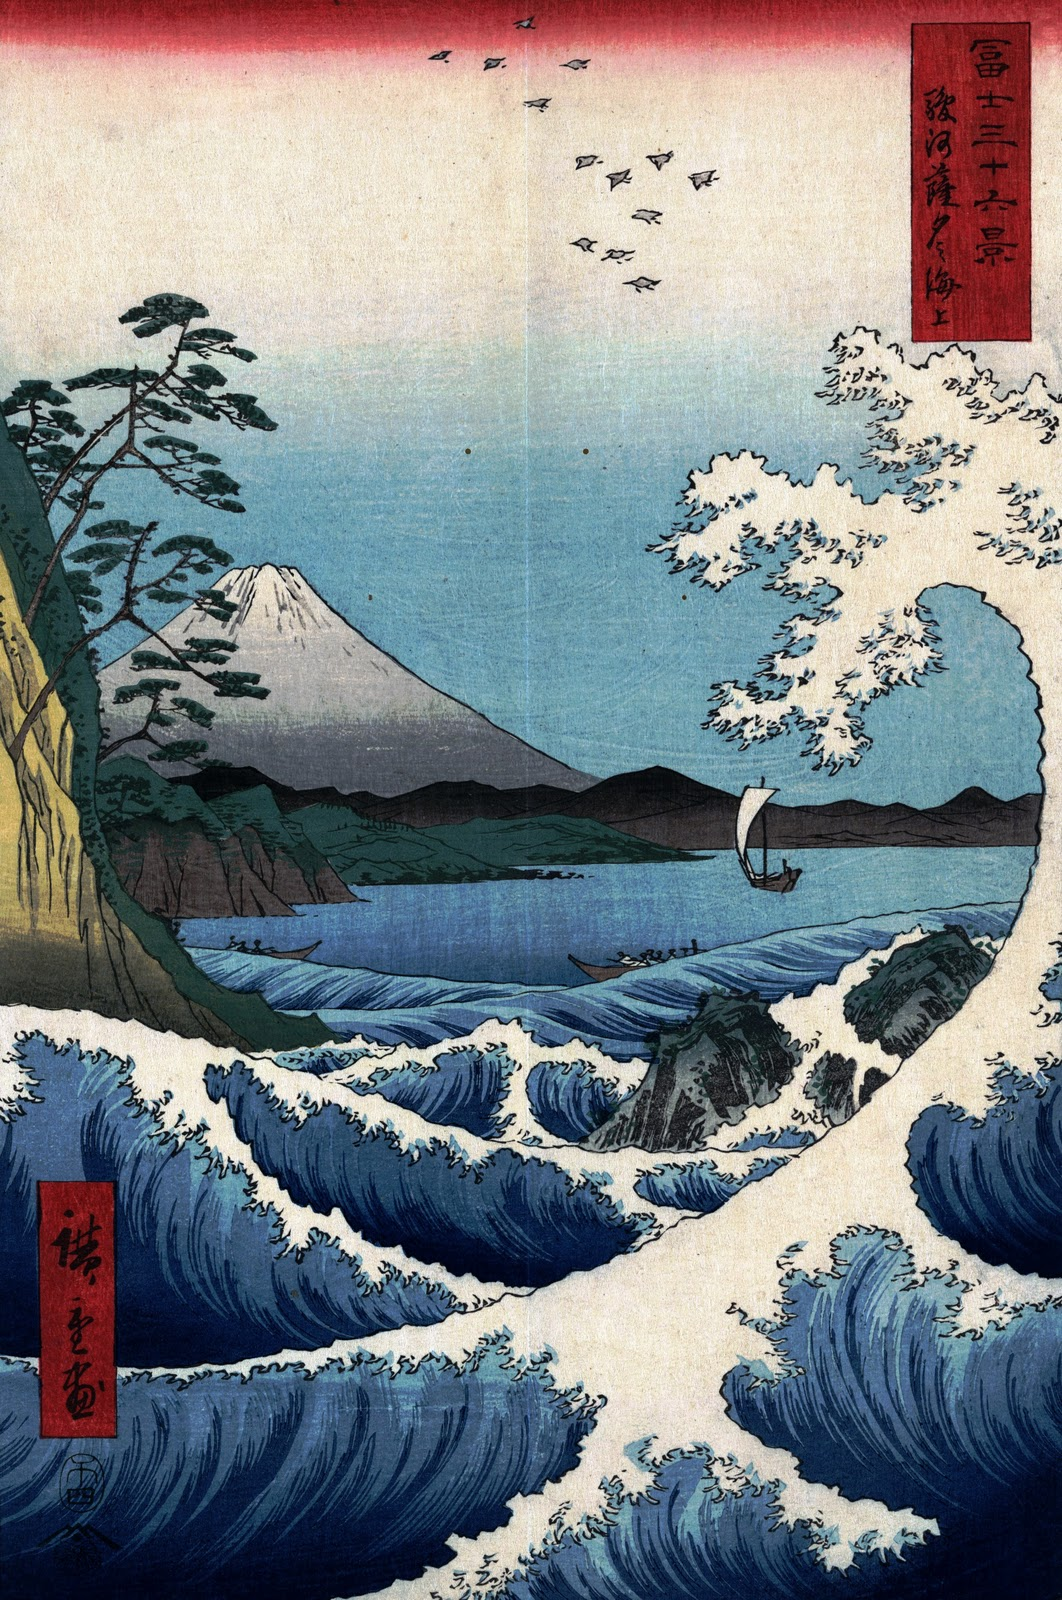 the exquisite beauty of hiroshige